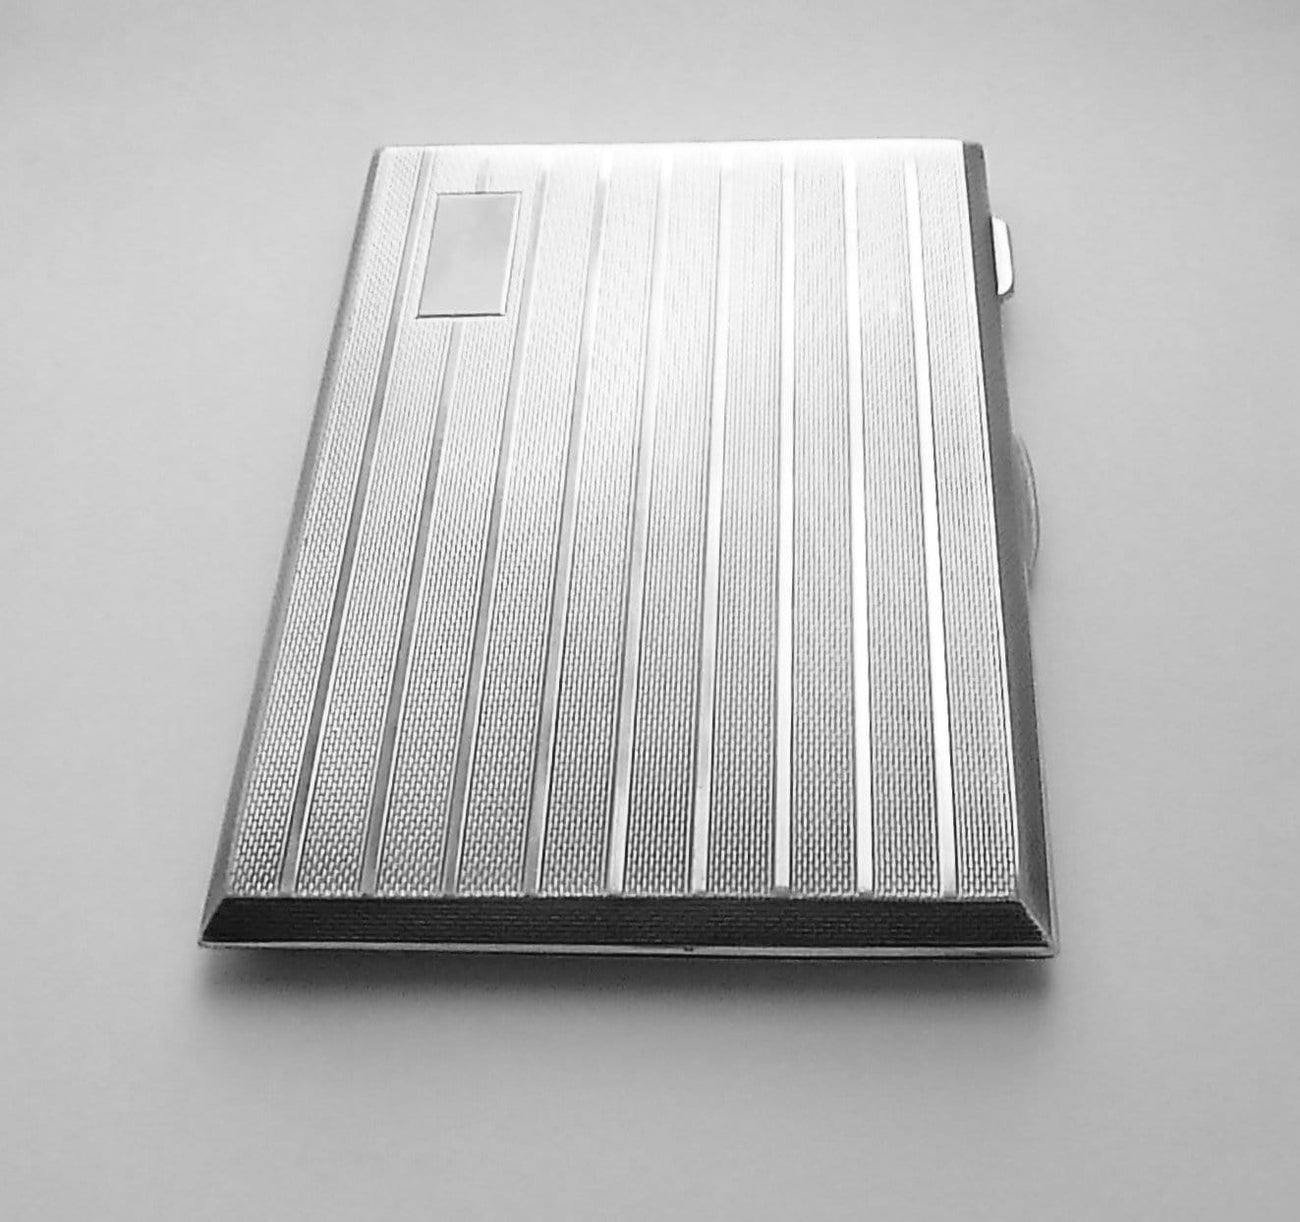 Large solid silver cigarette cases long business card cases silversmith R.N.Hollings & Co. 1946